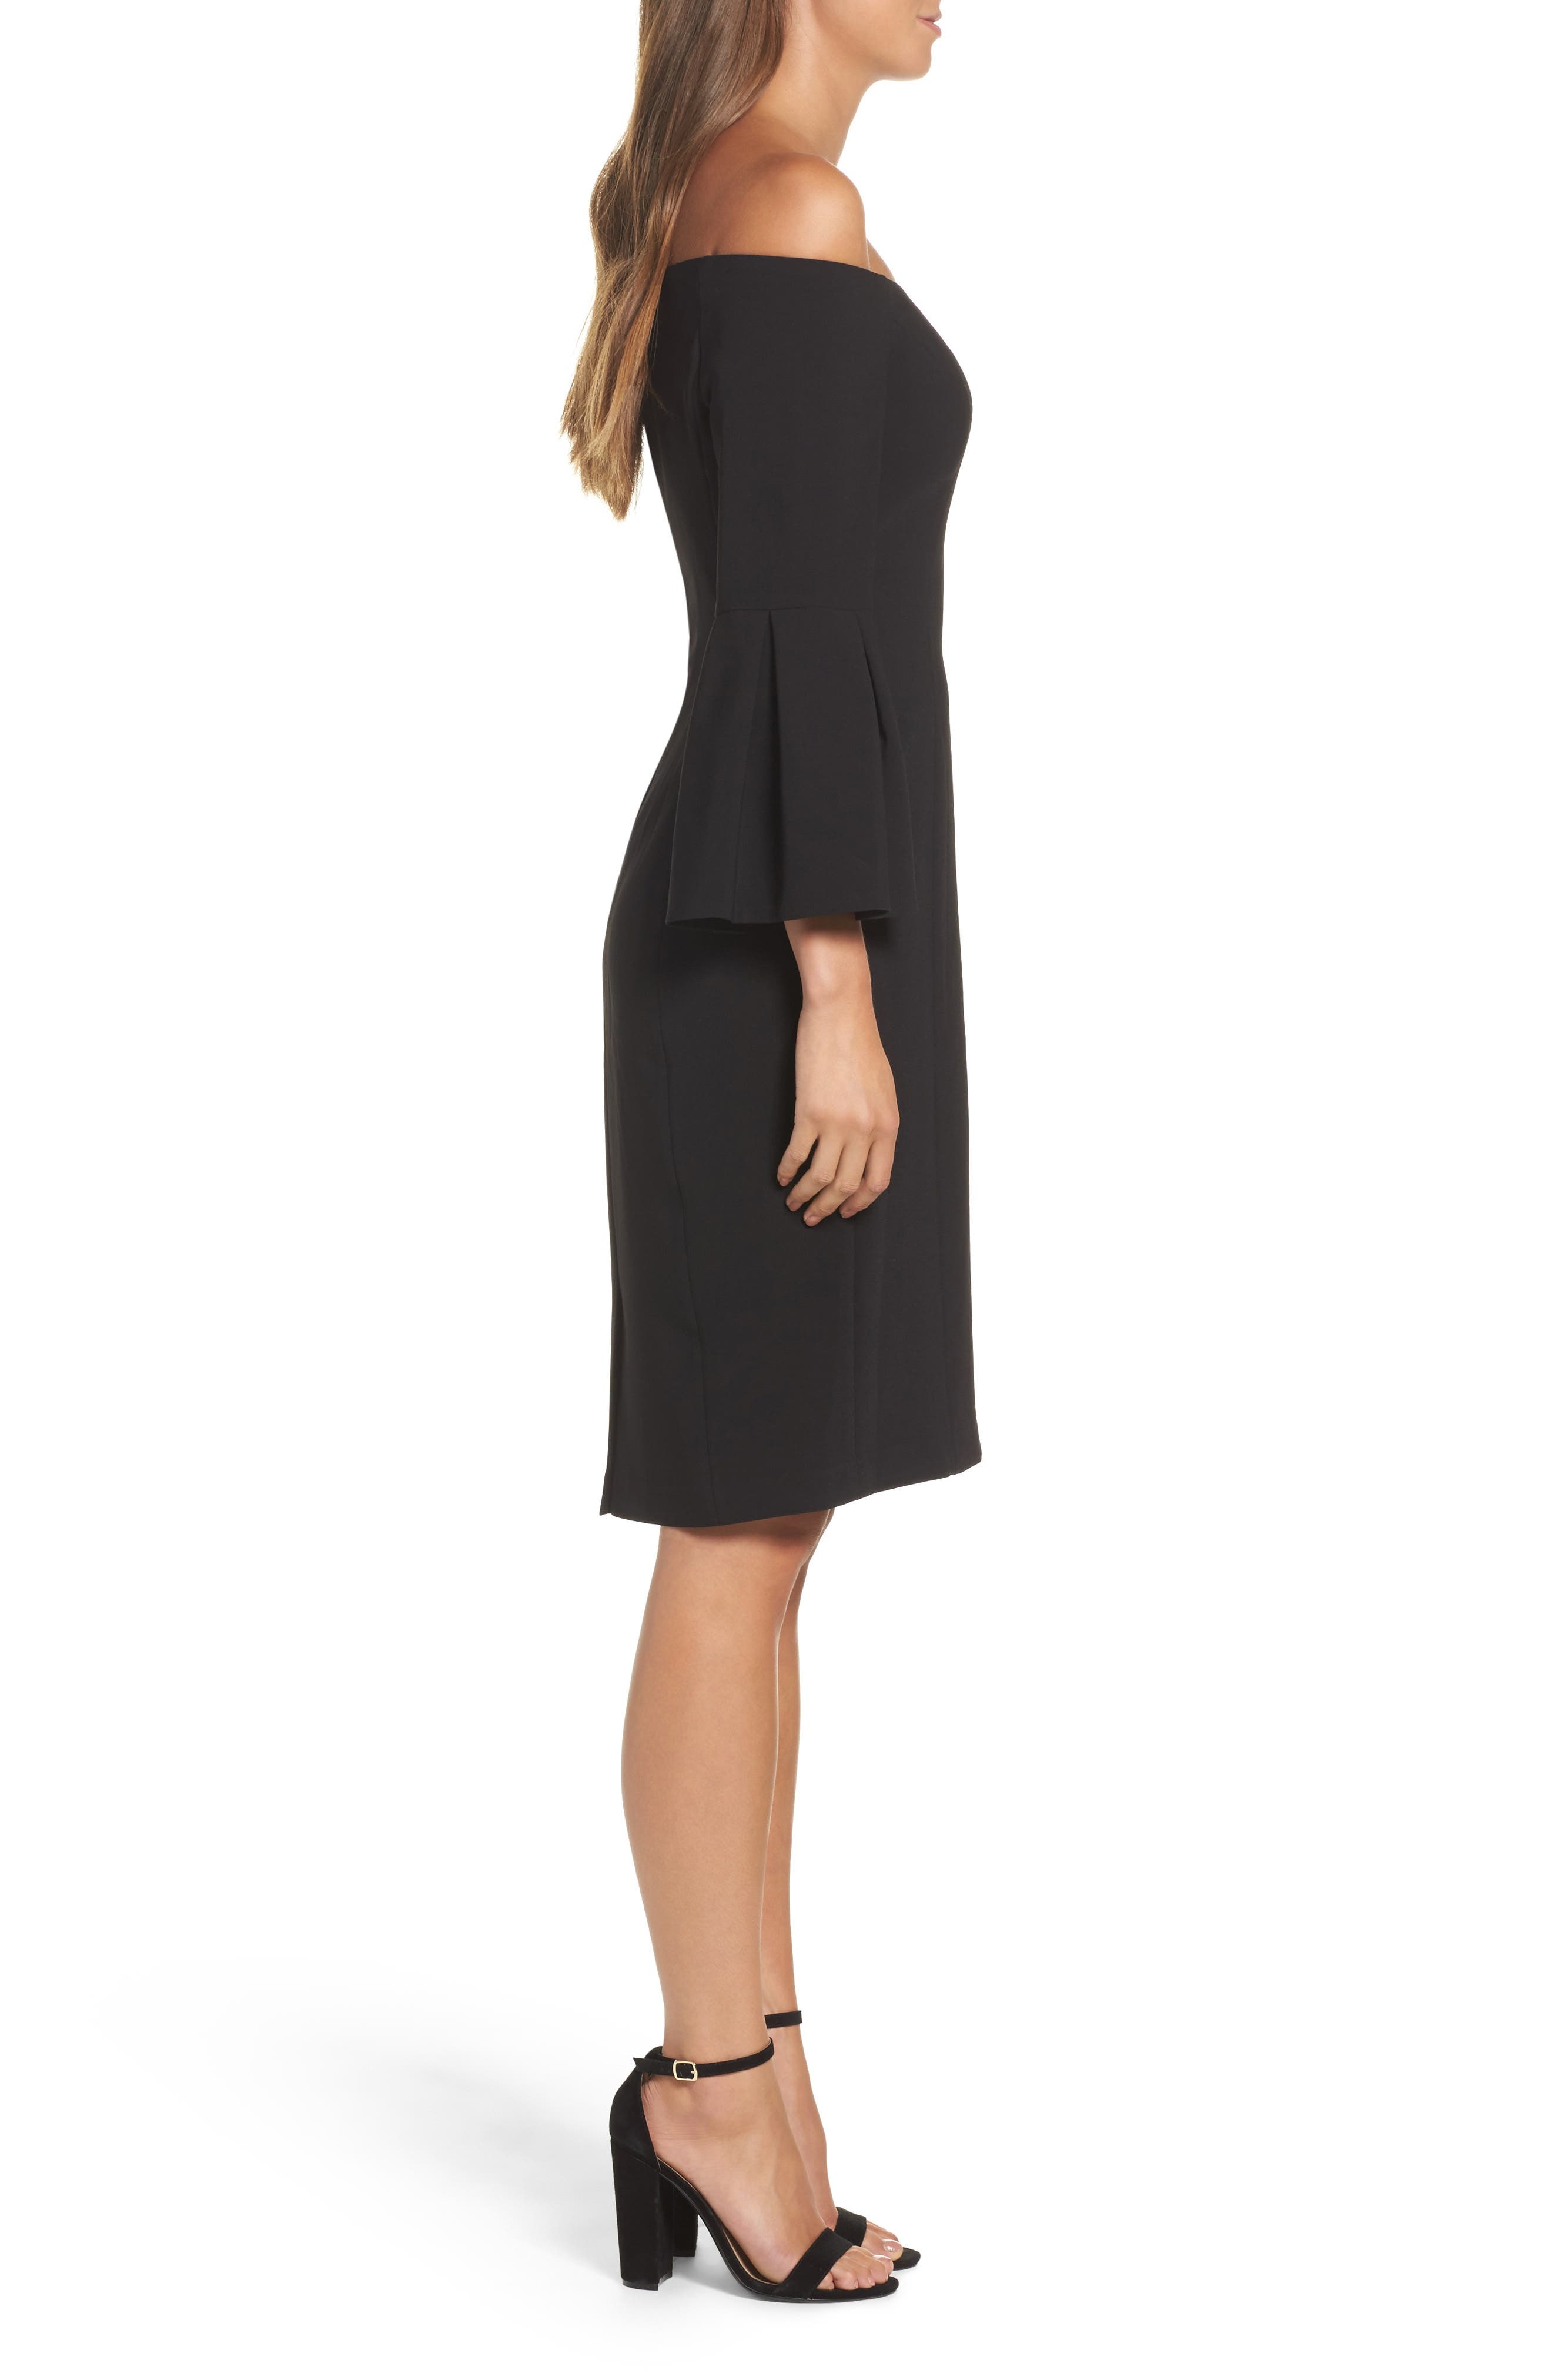 VINCE CAMUTO,                             Off the Shoulder Bell Sleeve Sheath Dress,                             Alternate thumbnail 3, color,                             001